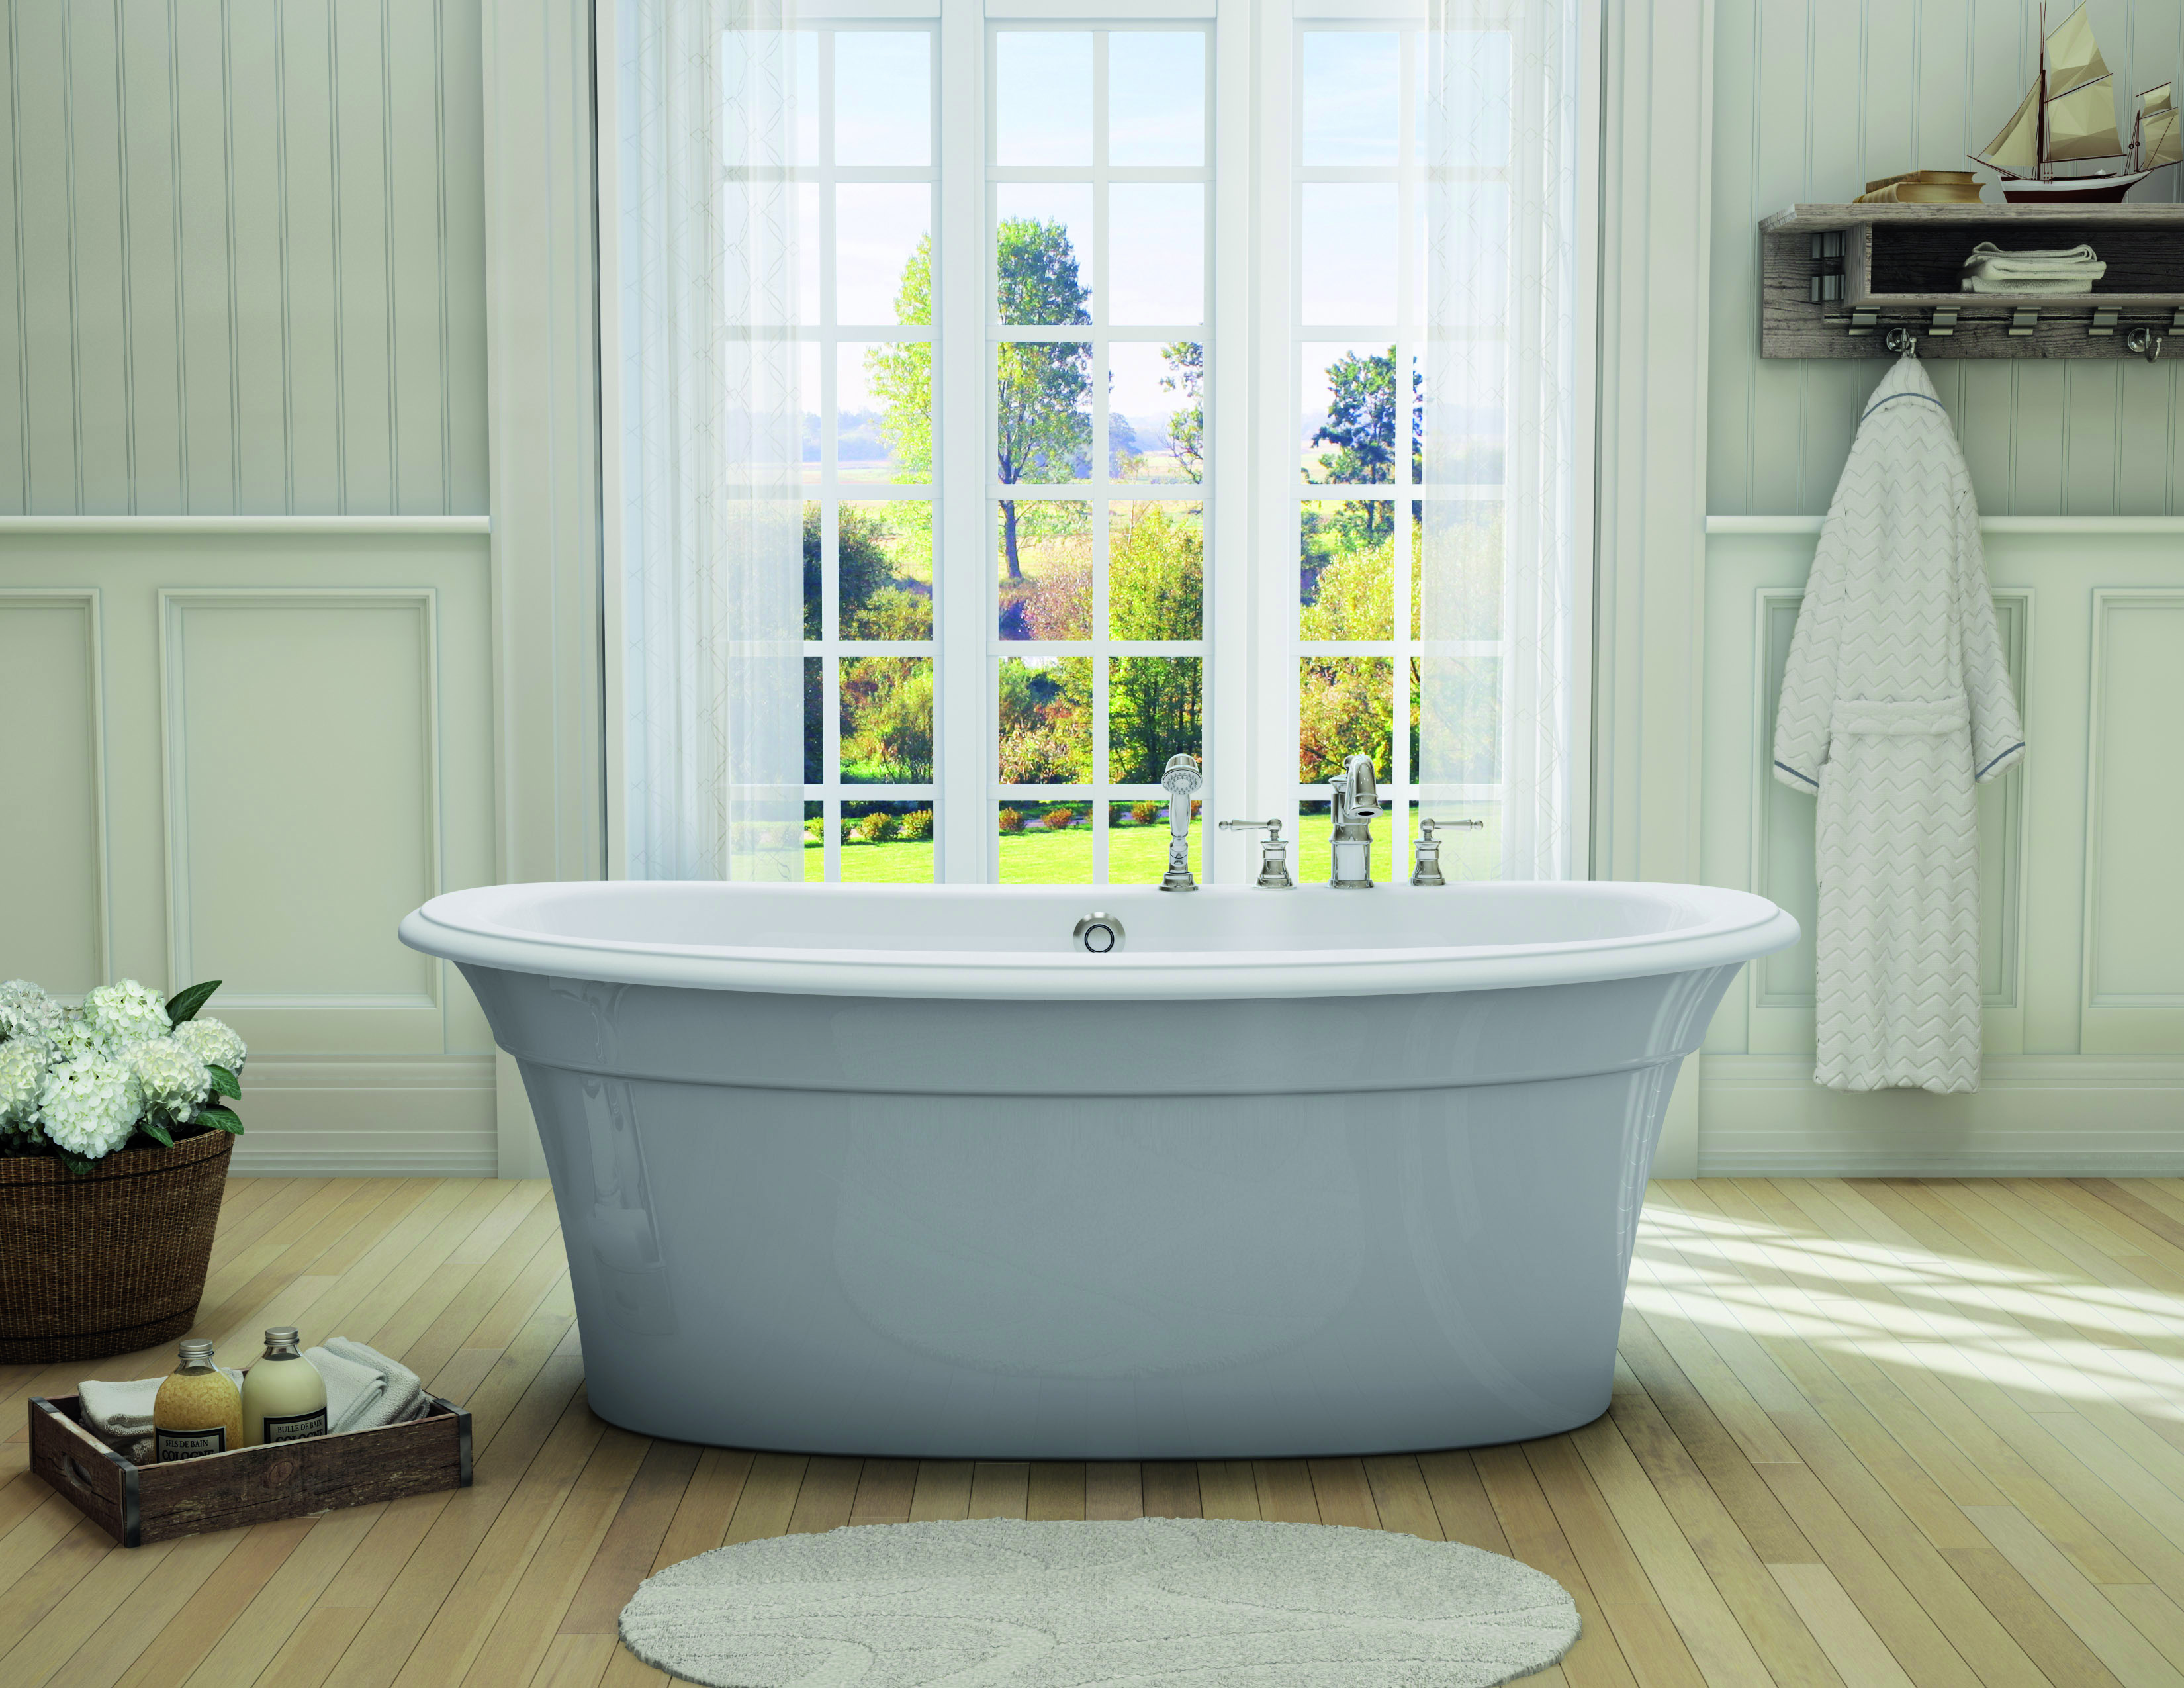 Golden Rules For Choosing The Right Bathtub